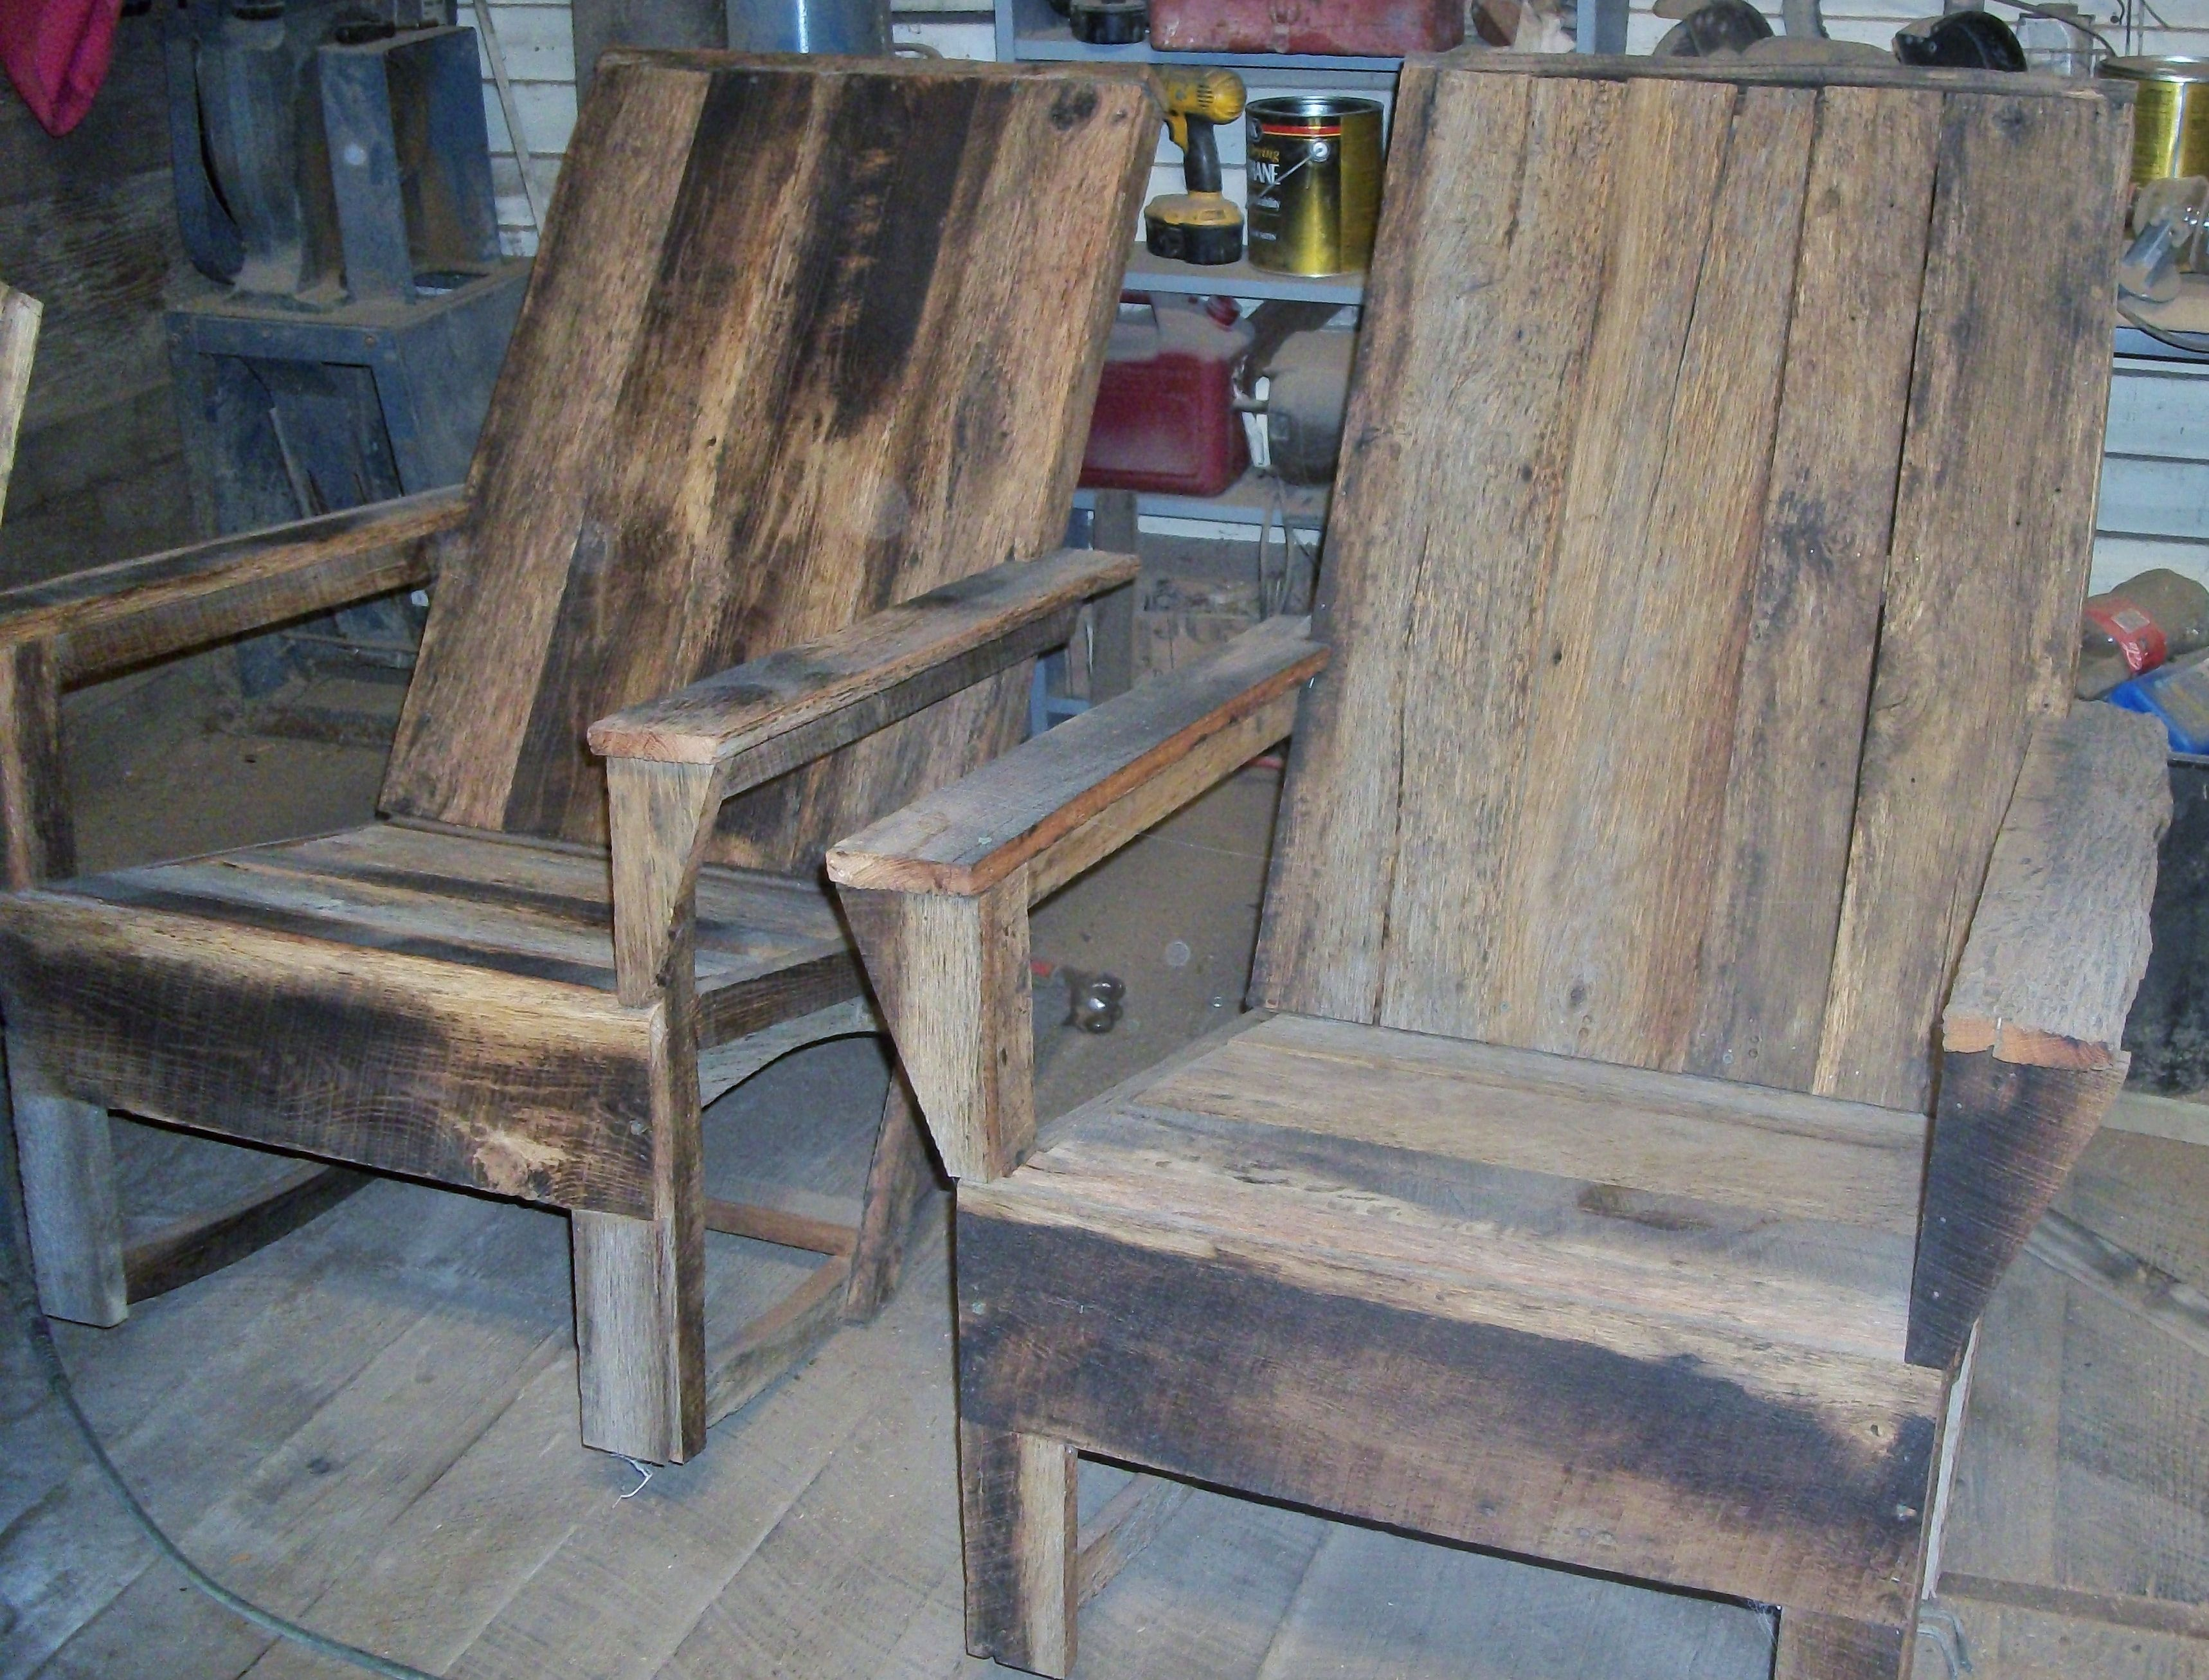 Barn Wood Rocking Chairs Built By Eddie Abernathy At Barn Wood Furniture In  Union Grove,